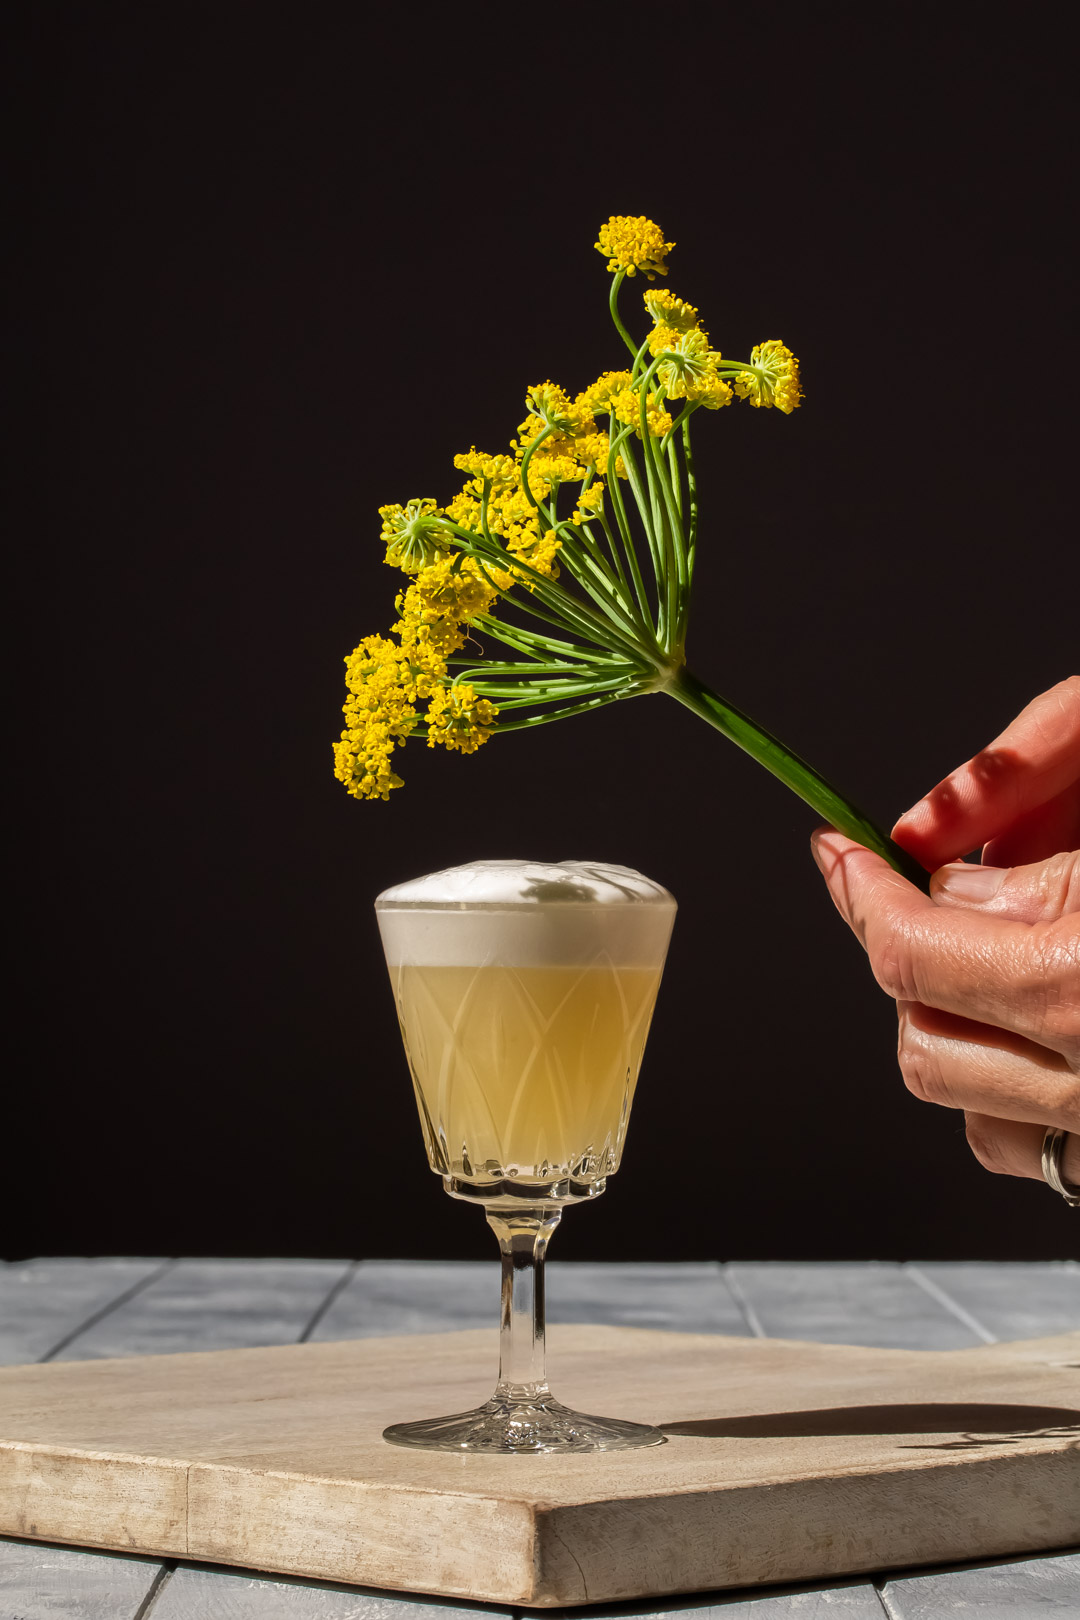 fennel flower silver sour with fennel umbrel over drink